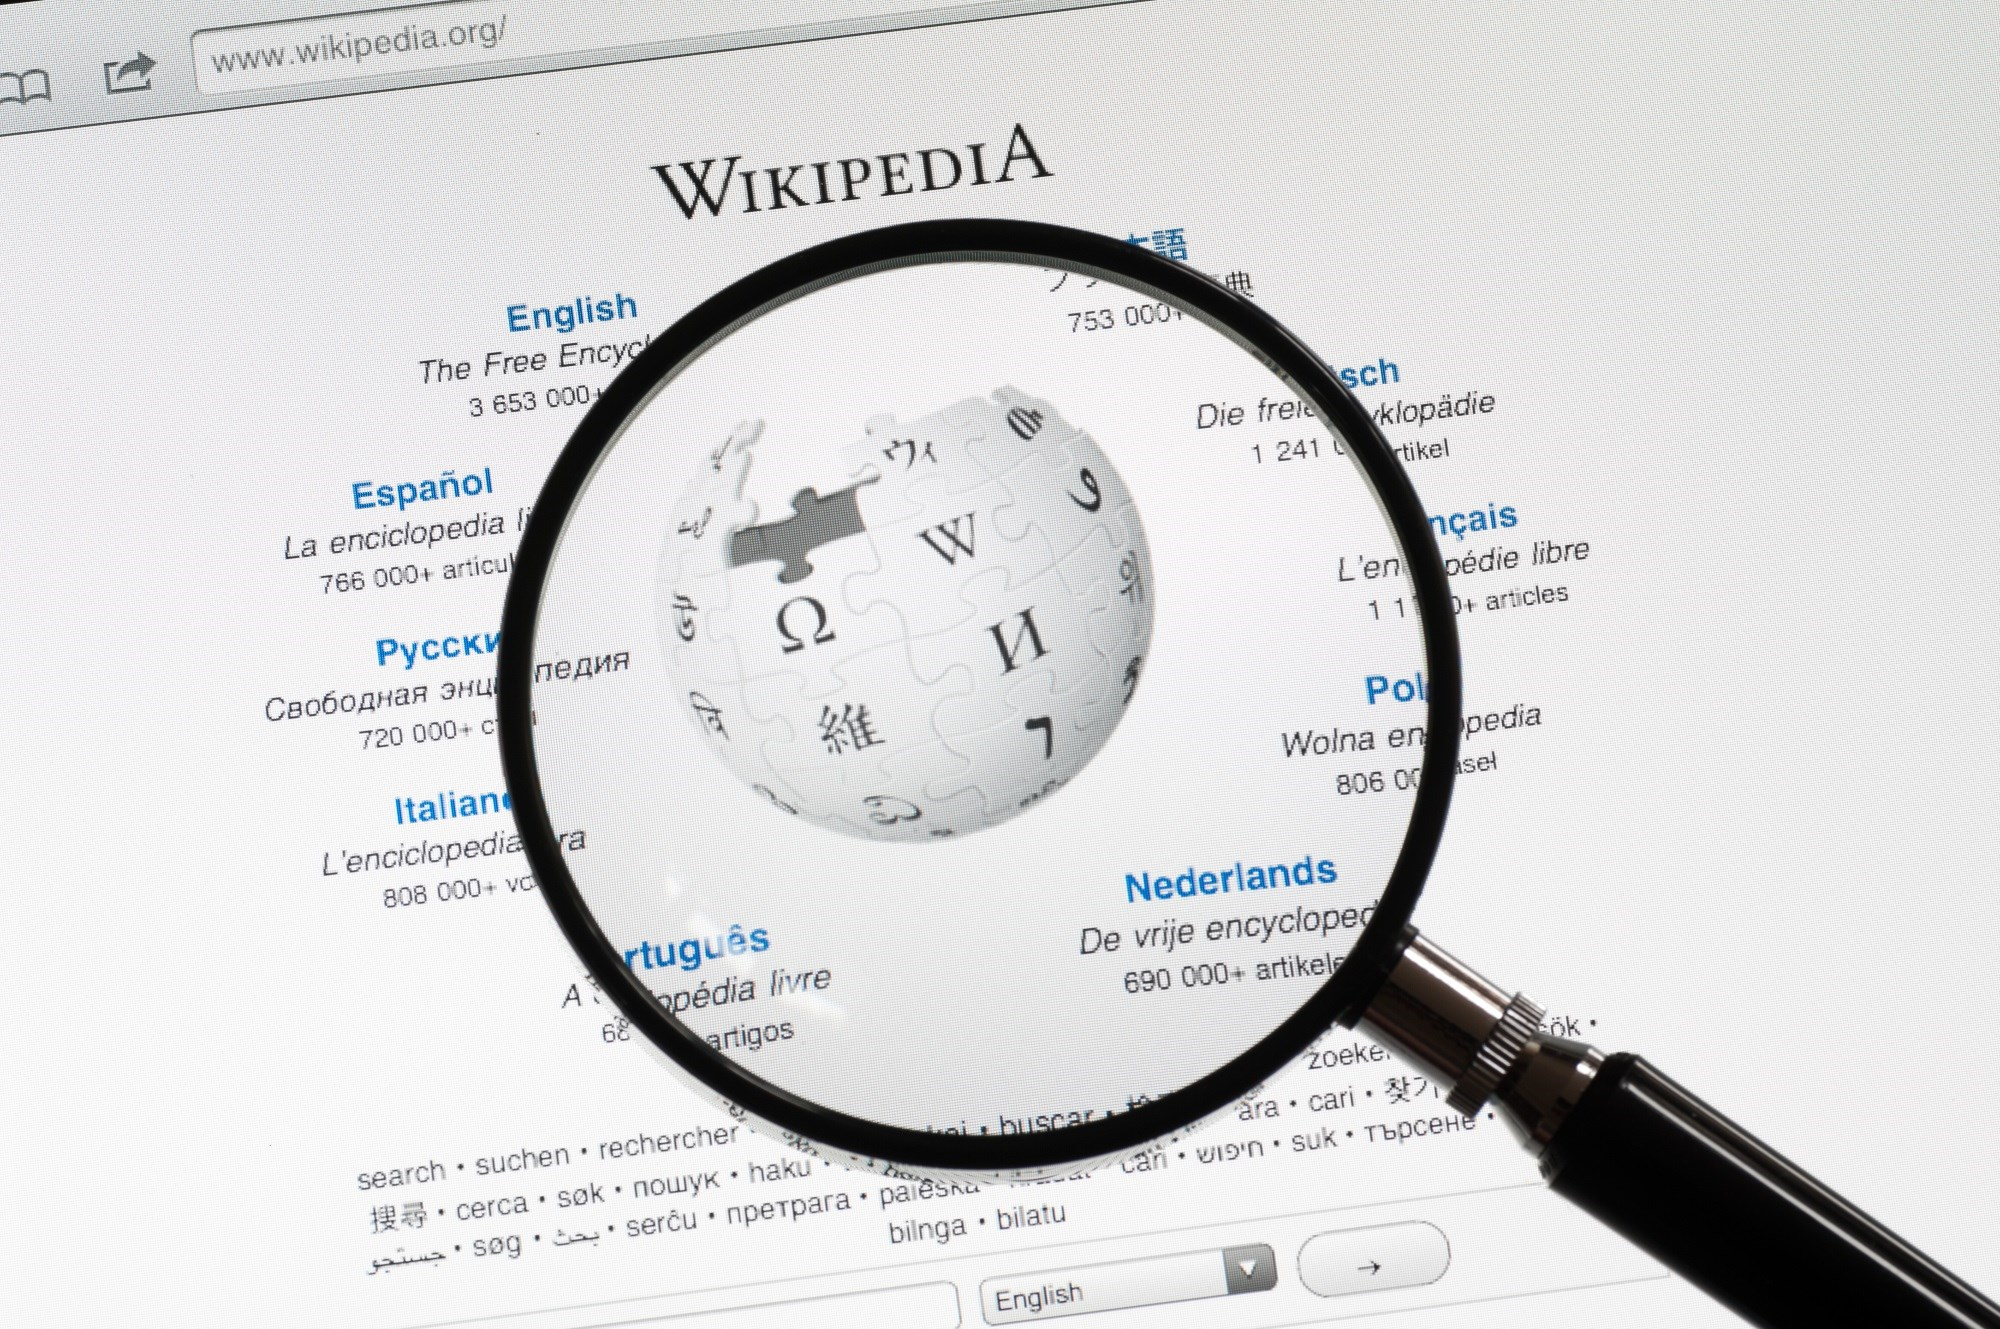 Wikipedia is frequently used as a starting point for health-focused research.